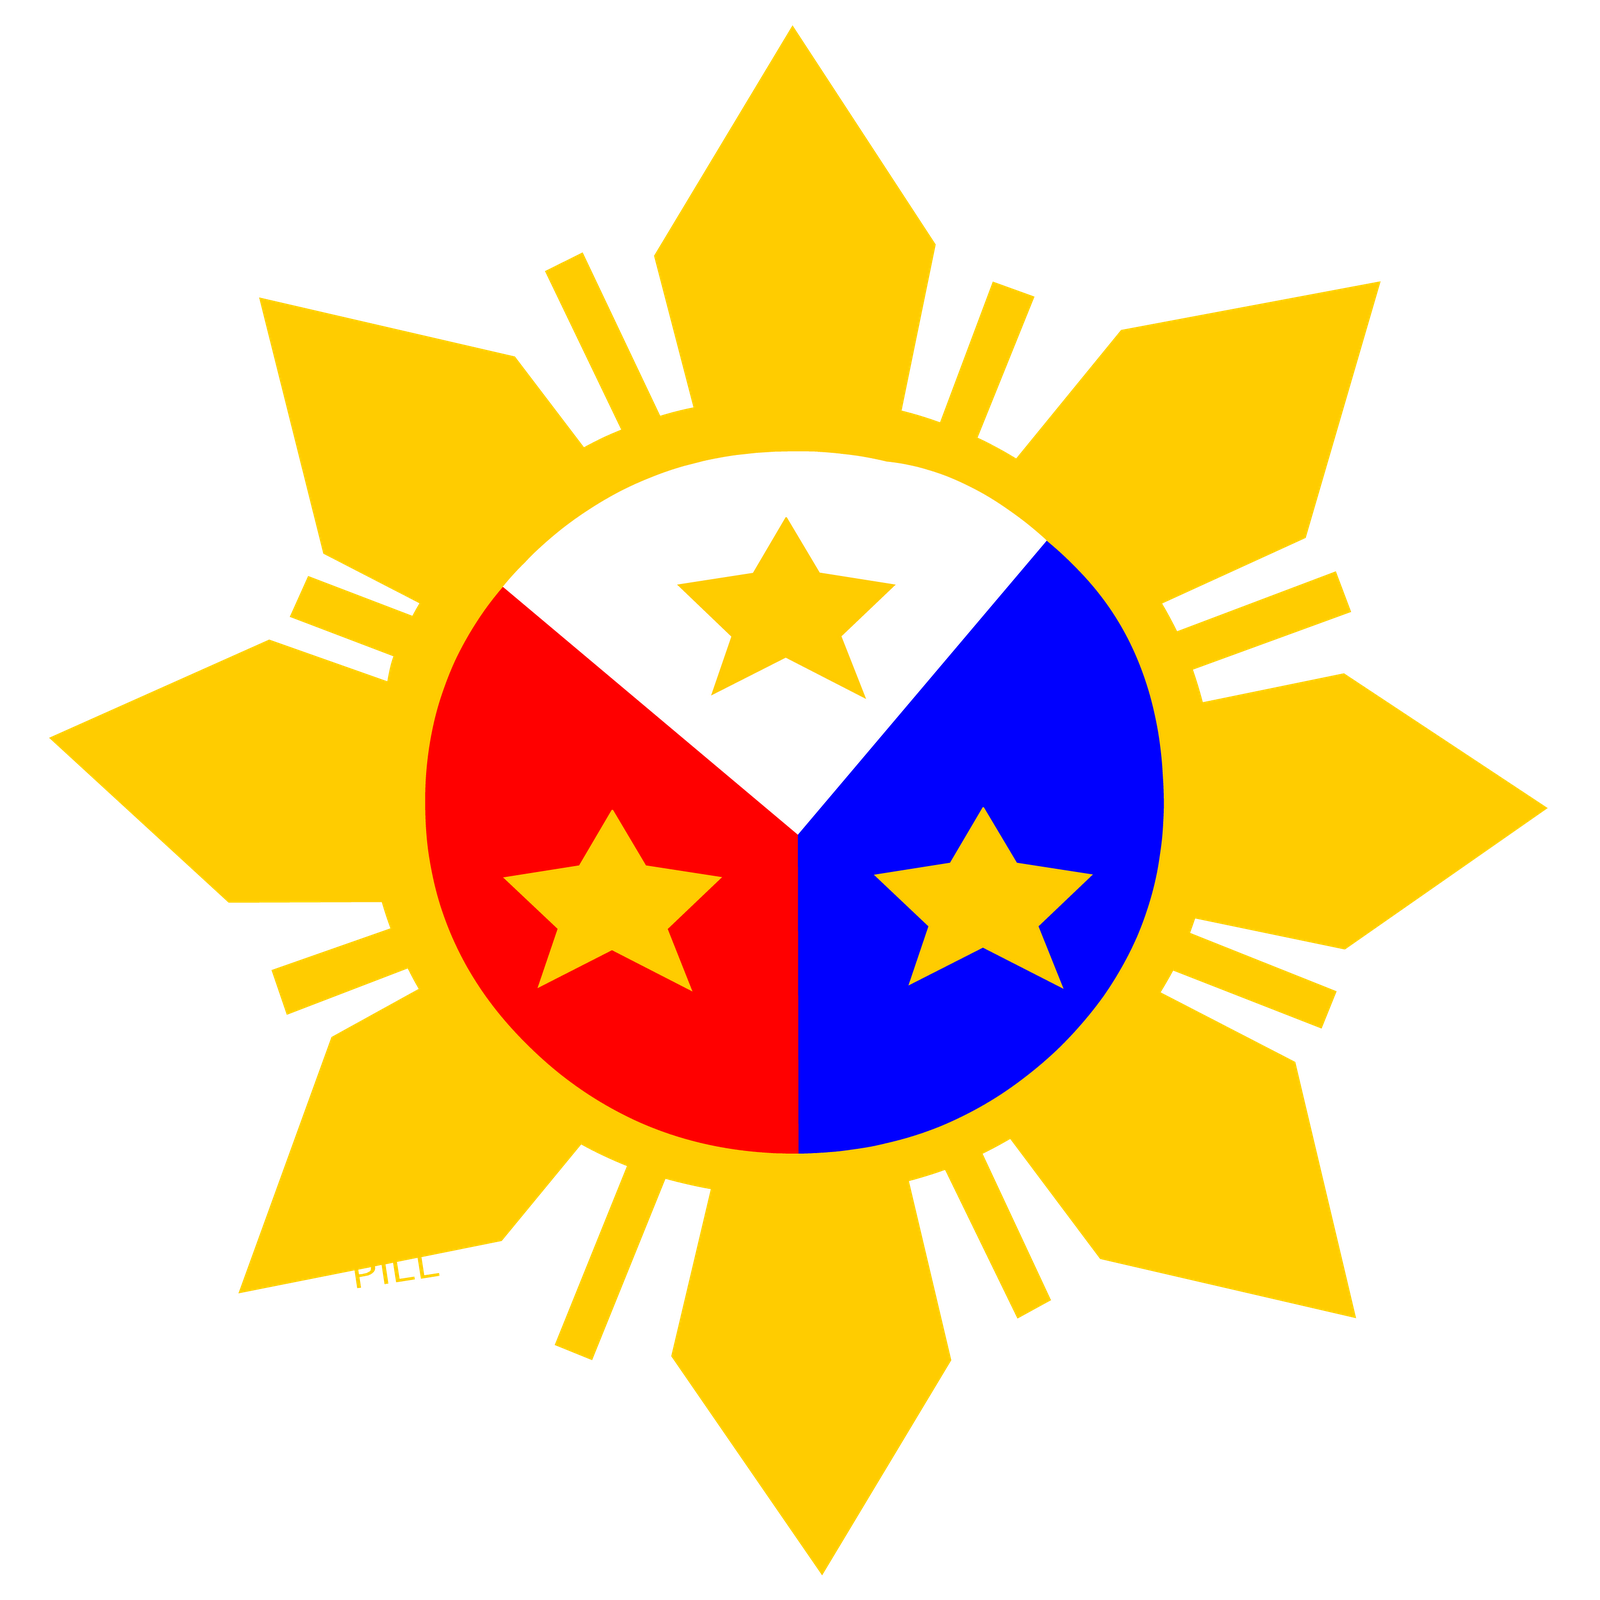 collection of png. Respect clipart symbol filipino